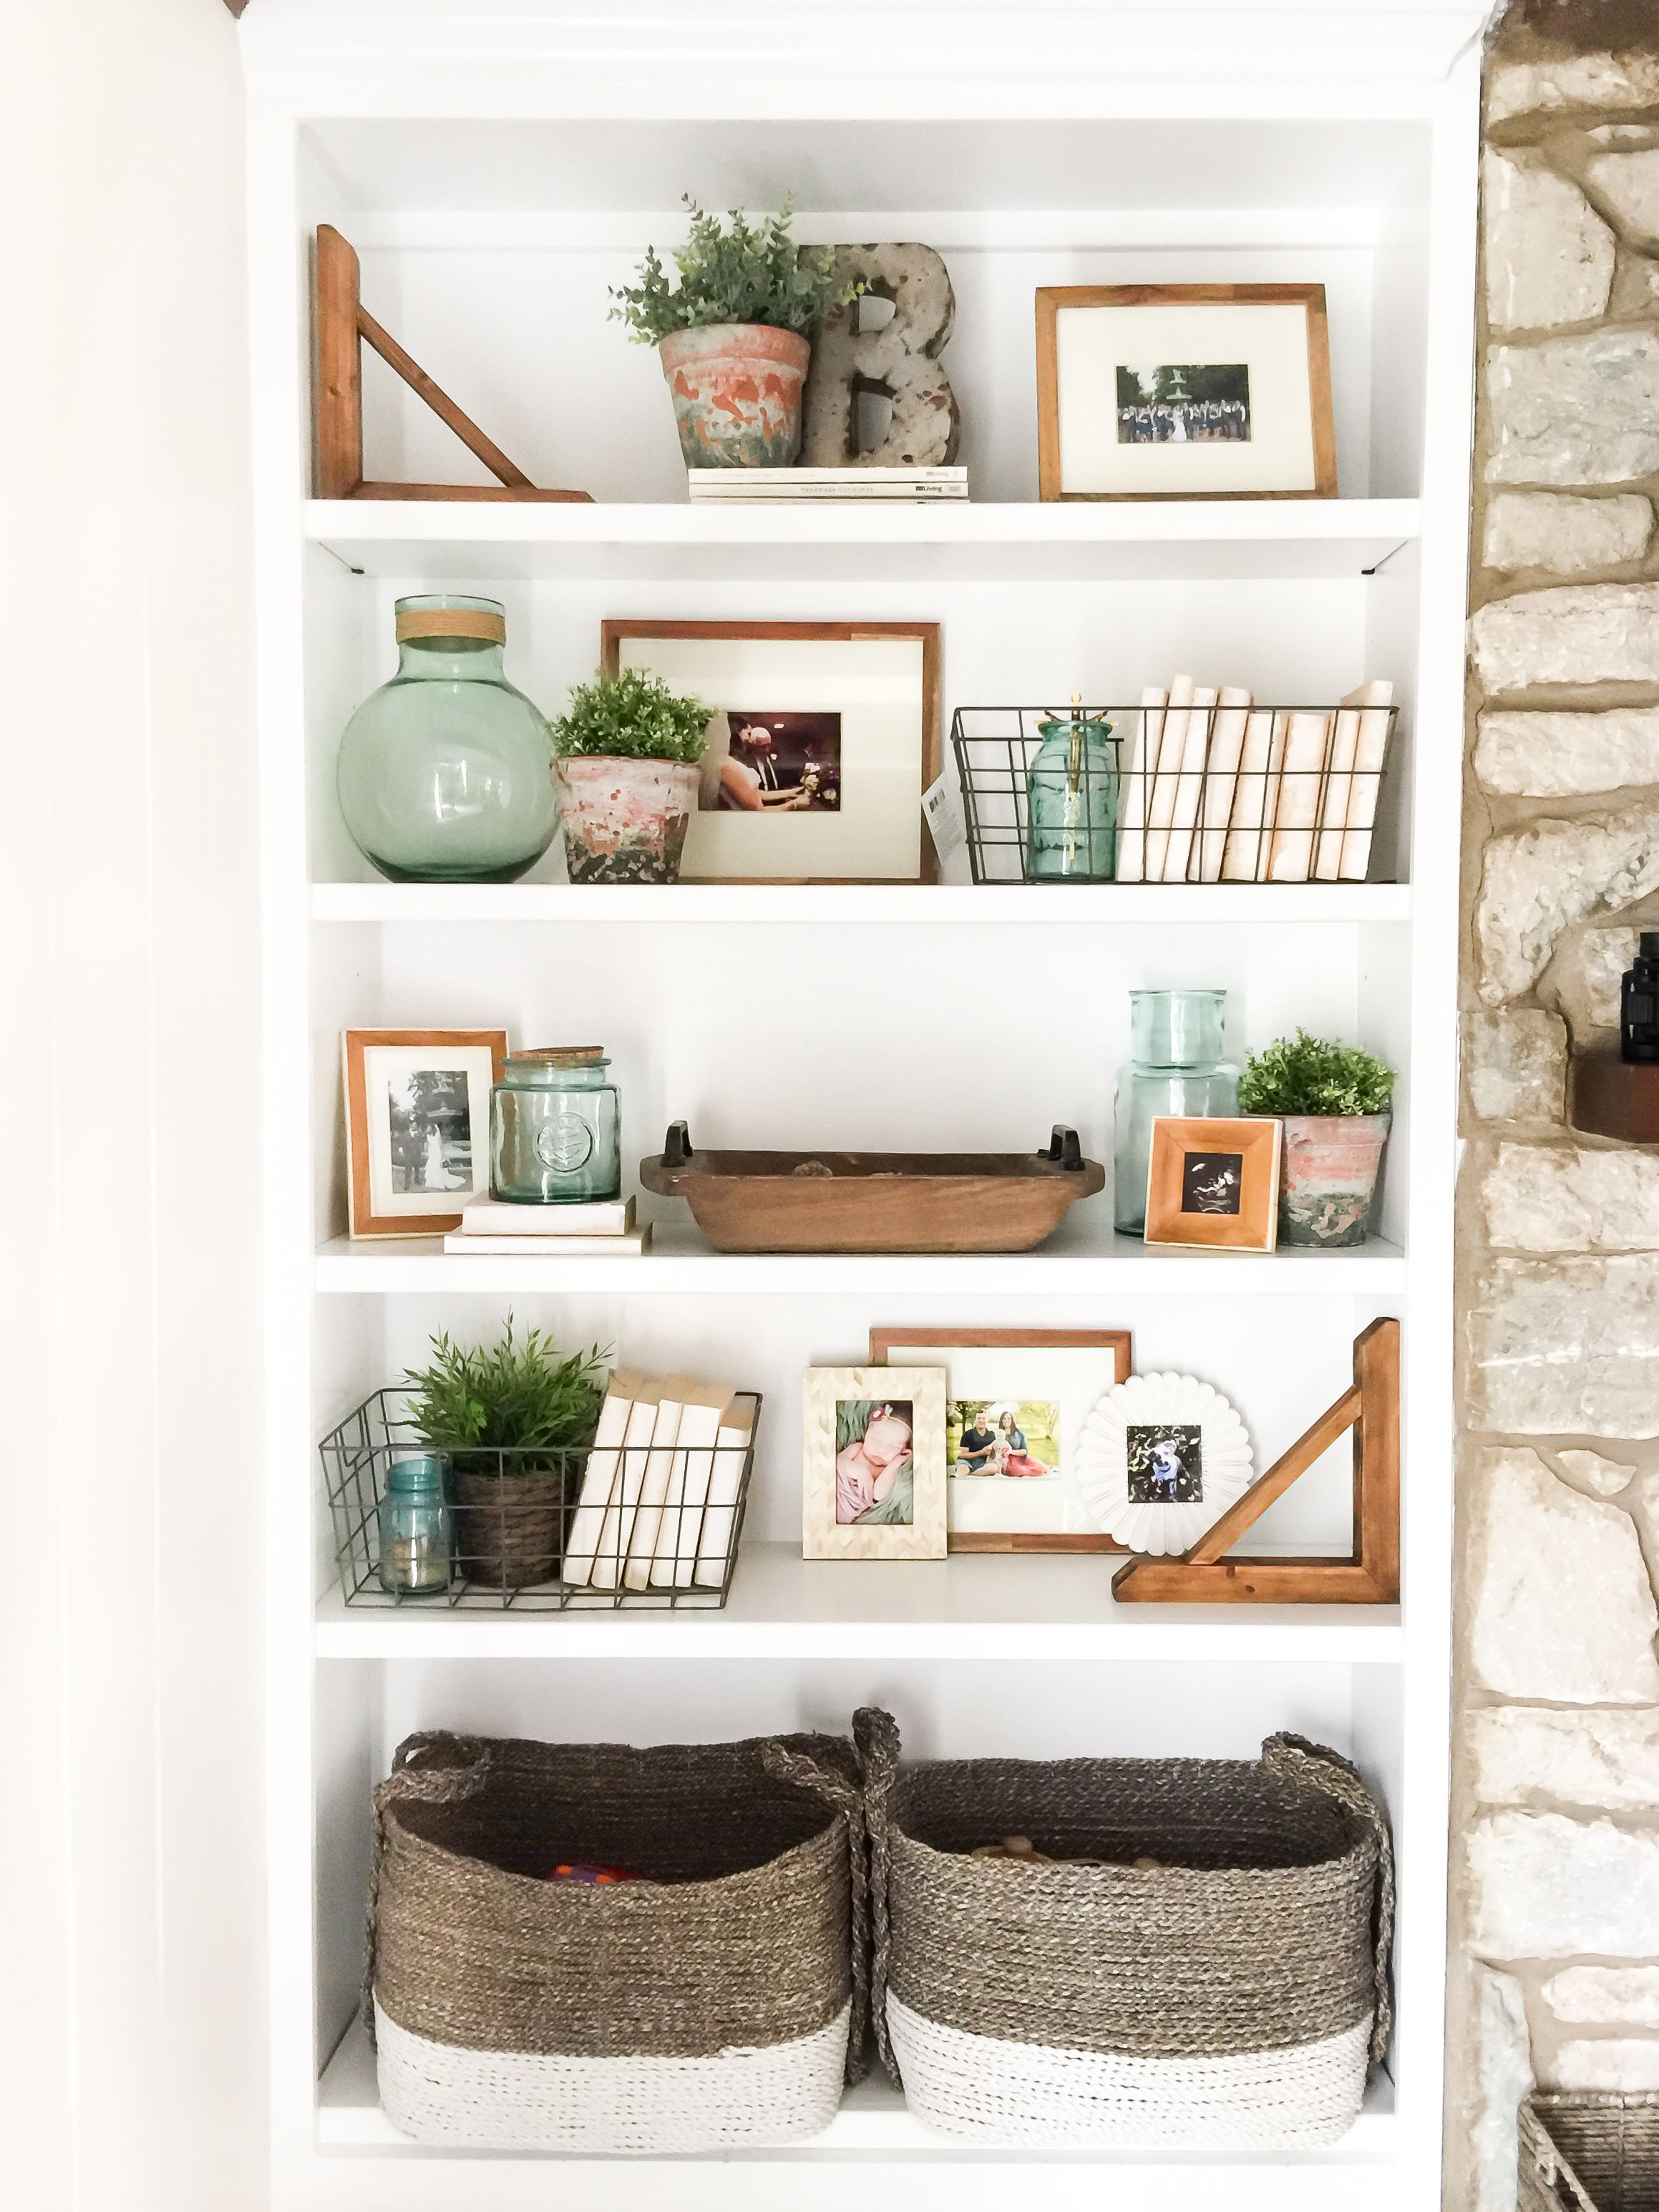 How To Style Open Shelves 3 Tips For An Uncluttered Look House By Hoff Living Room Shelves Shelf Decor Living Room Home Decor #shelf #design #living #room